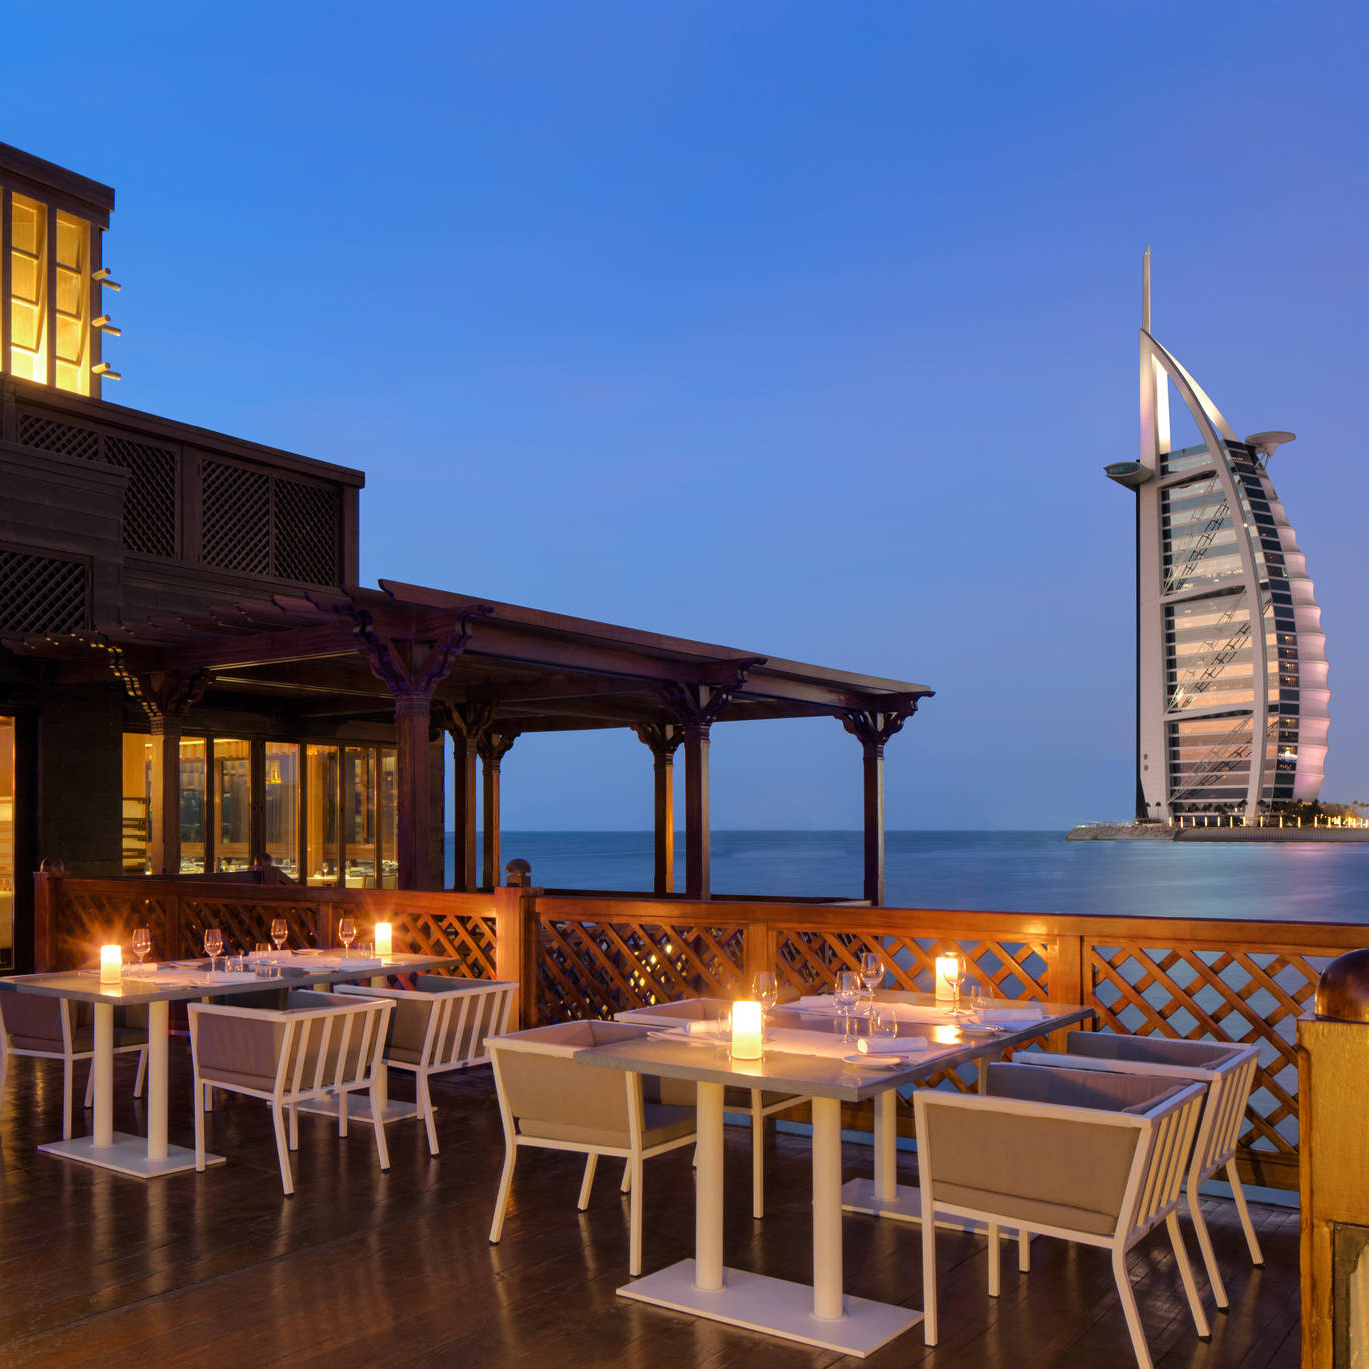 Pierchic Bar at Al Madinat Jumeriah